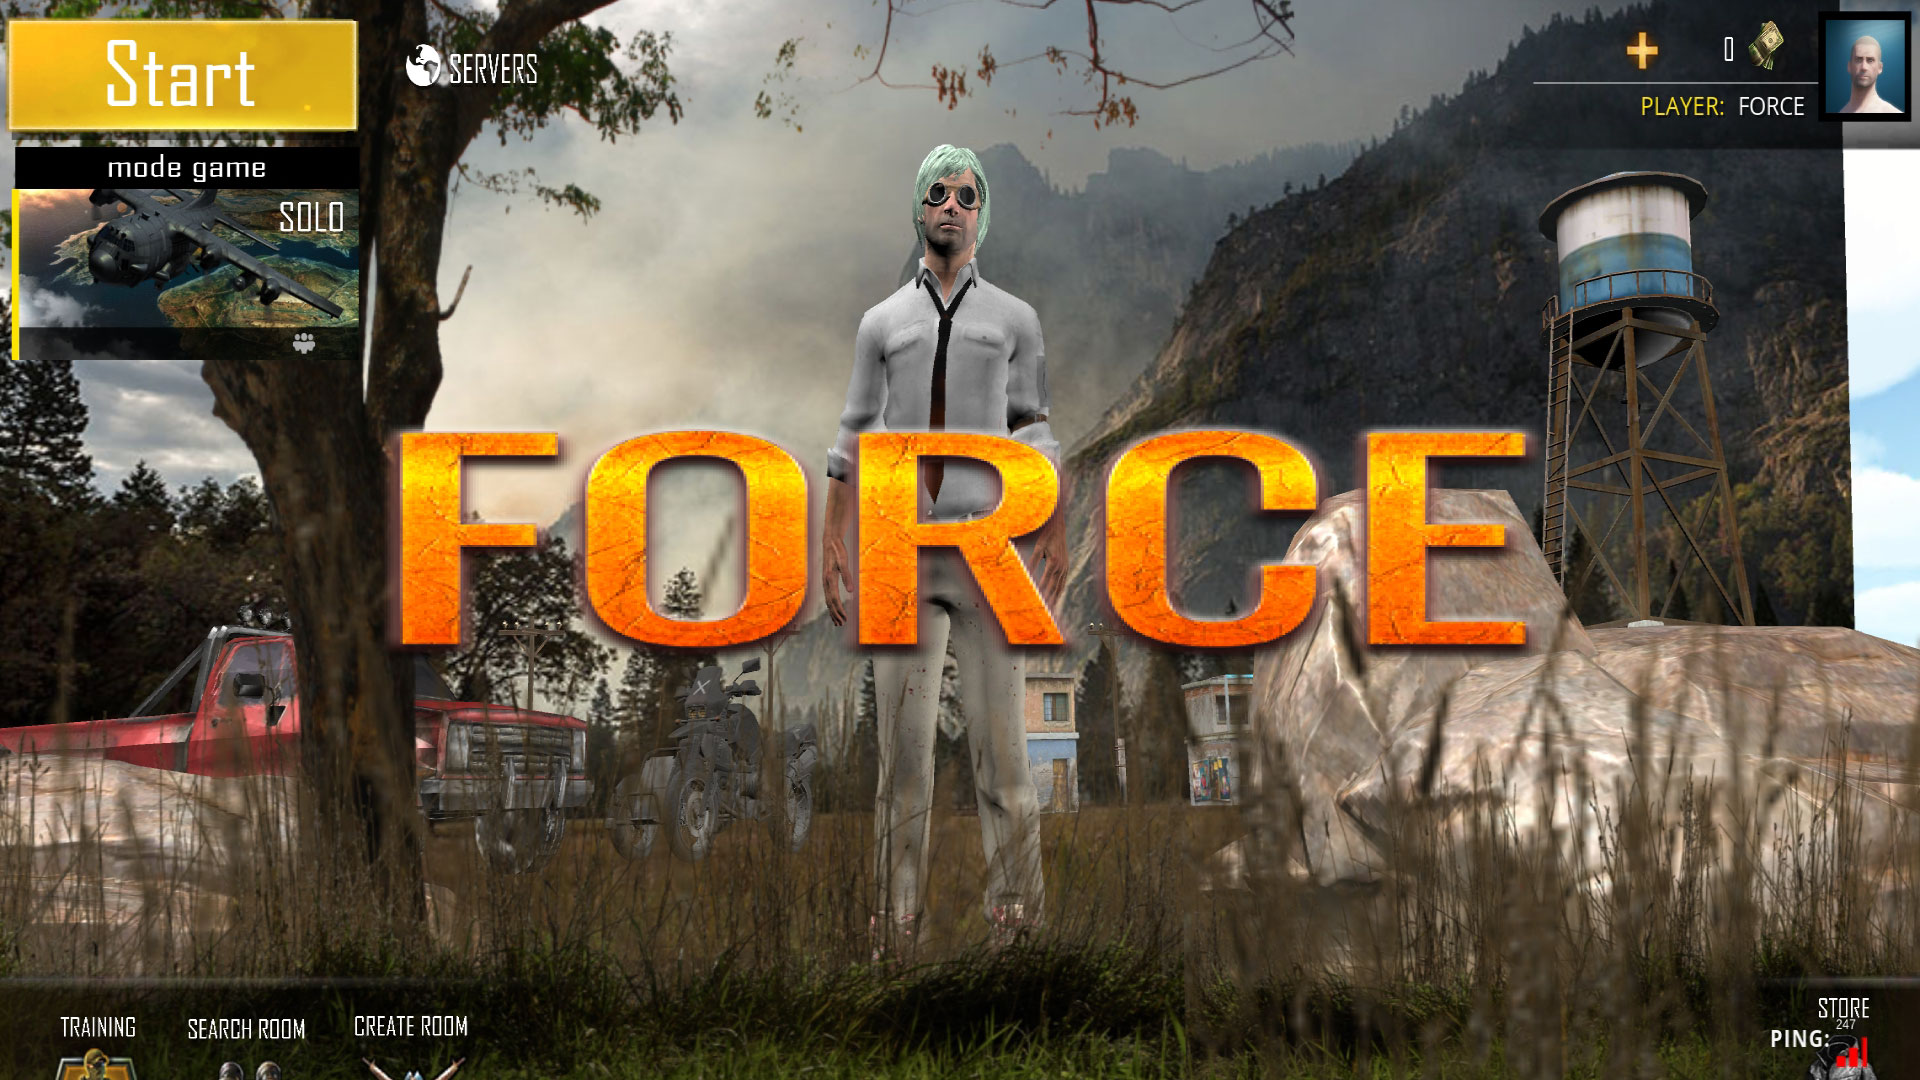 FORCE battle game now live for pre-registration on Google Play Store, launch expected soon